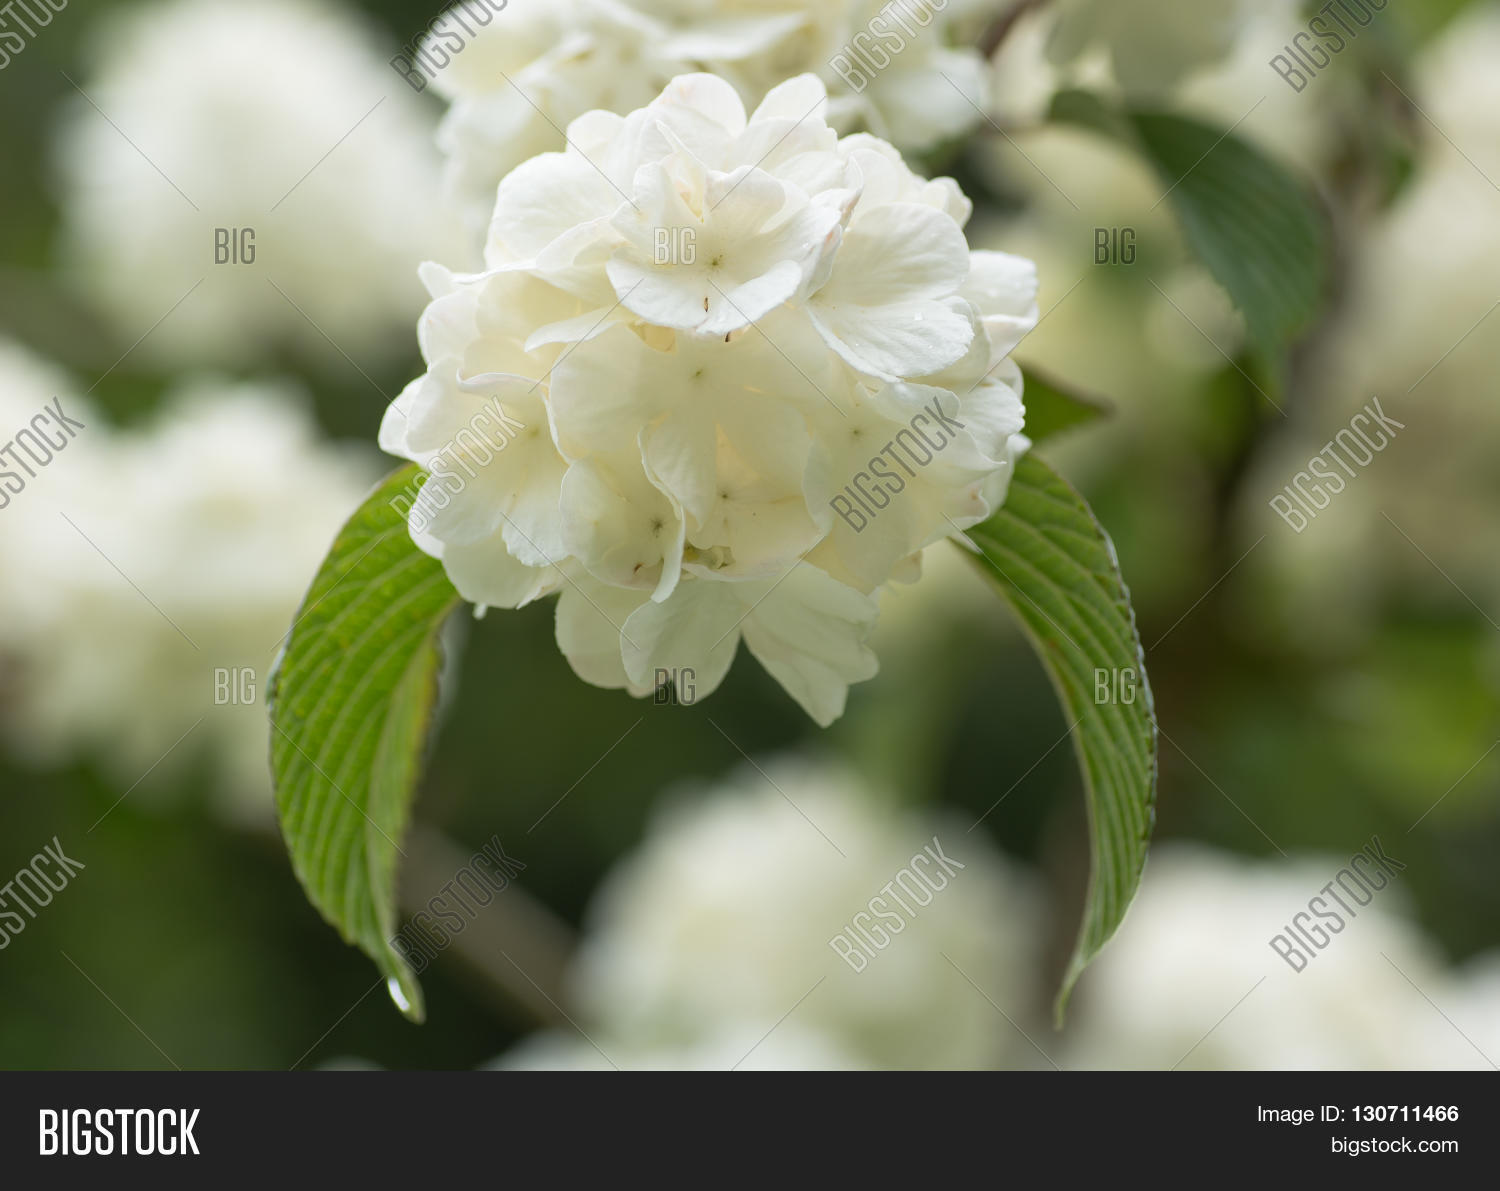 Japanese snowball bush image photo free trial bigstock japanese snowball bush viburnum plicatum f tomentosum sterile white lacecap mightylinksfo